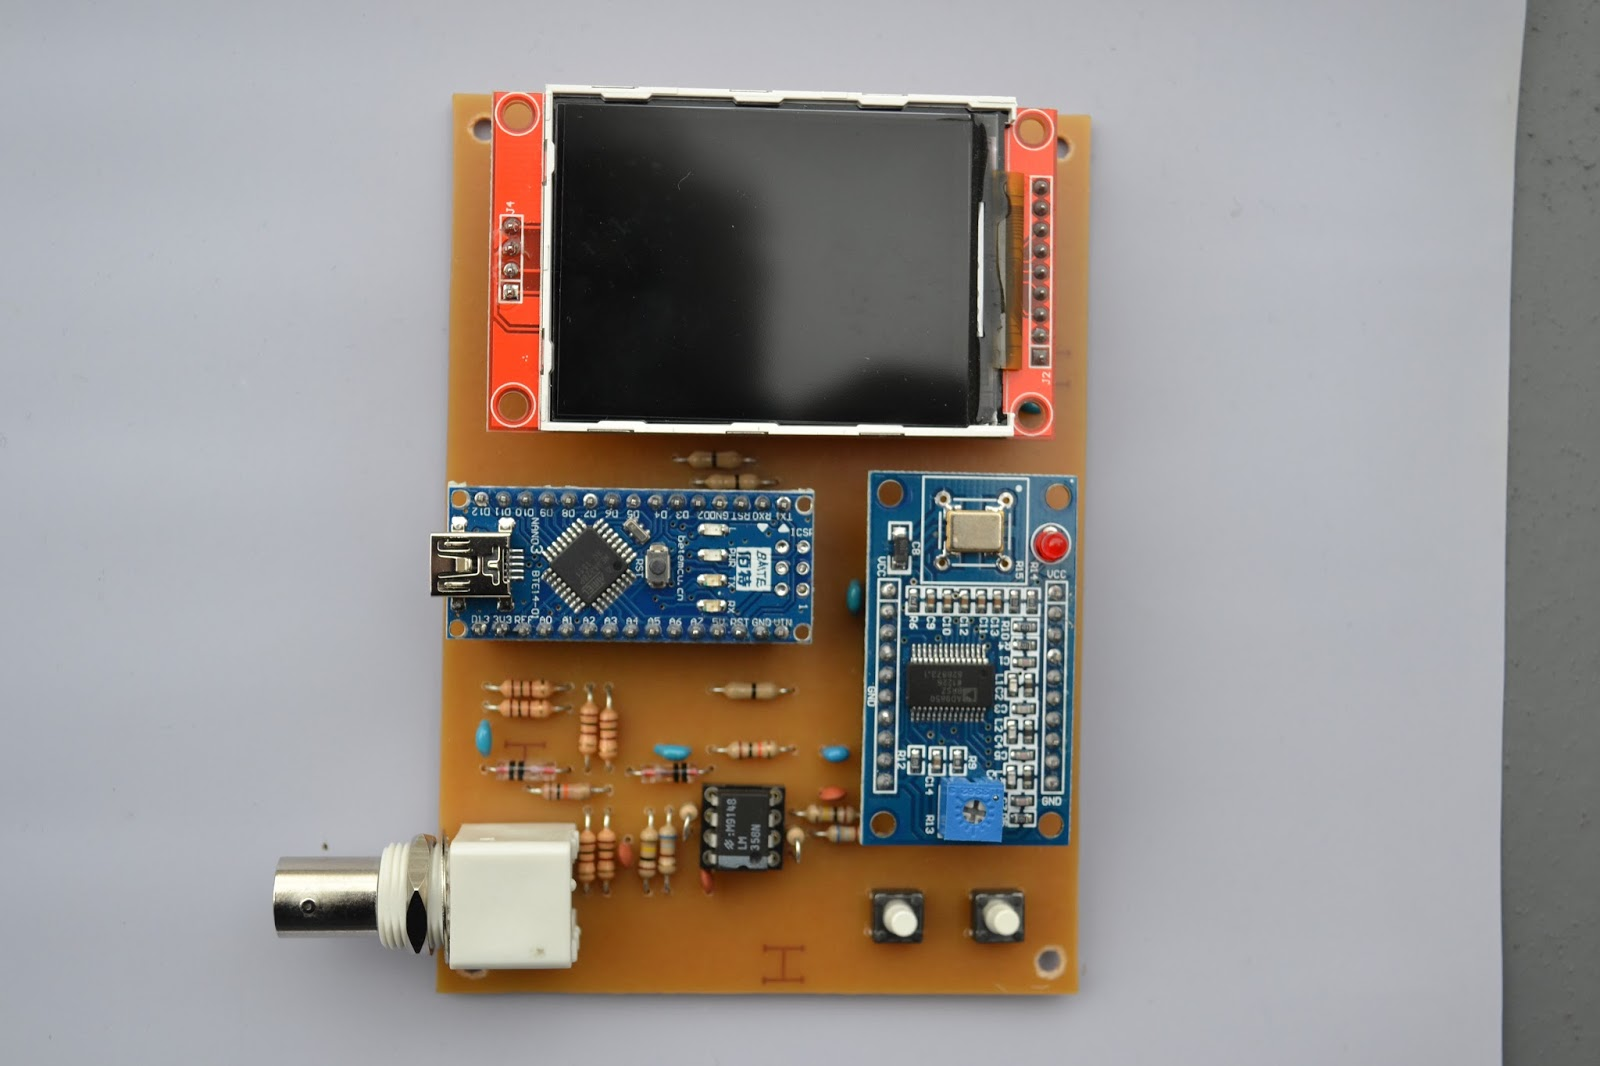 Weerstation together with Cheap Chinese Digital Calipers And You further Xbee S2digital S ling With Api Frame Data furthermore Camera Wiring Diagram likewise Model Rocket Altimeter Part 1 Electronics. on radio s arduino